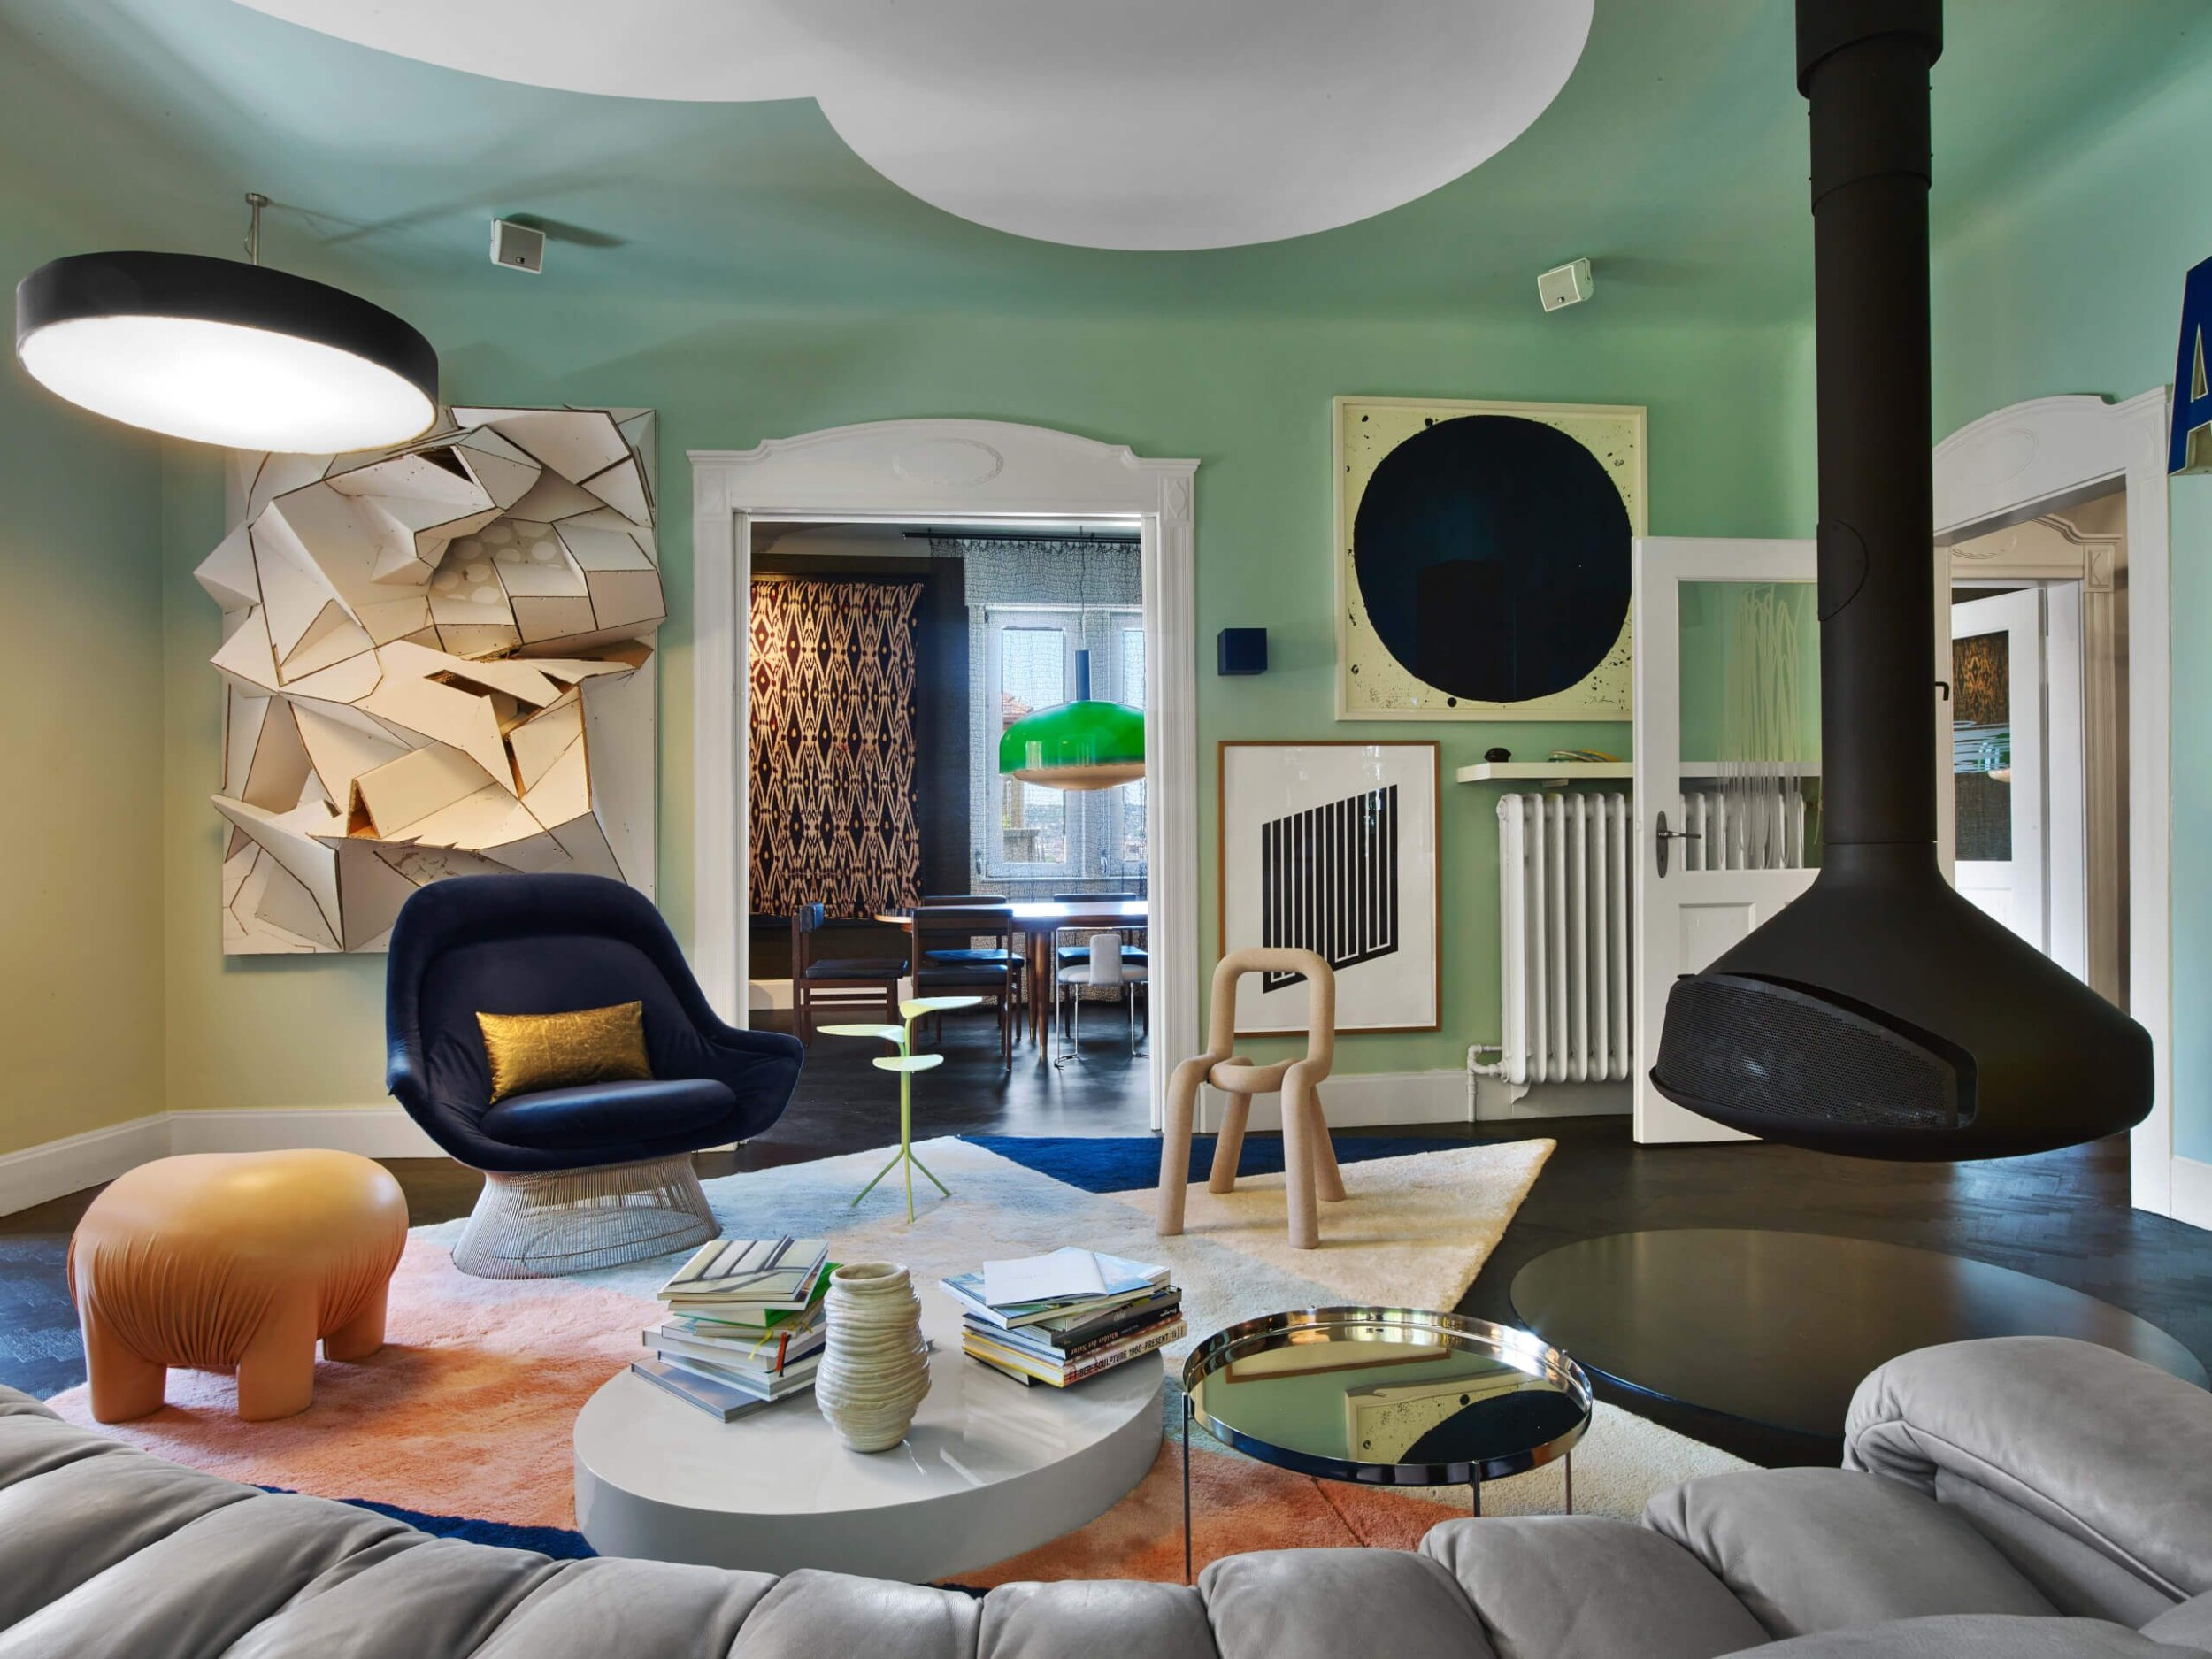 Eclectic style interior